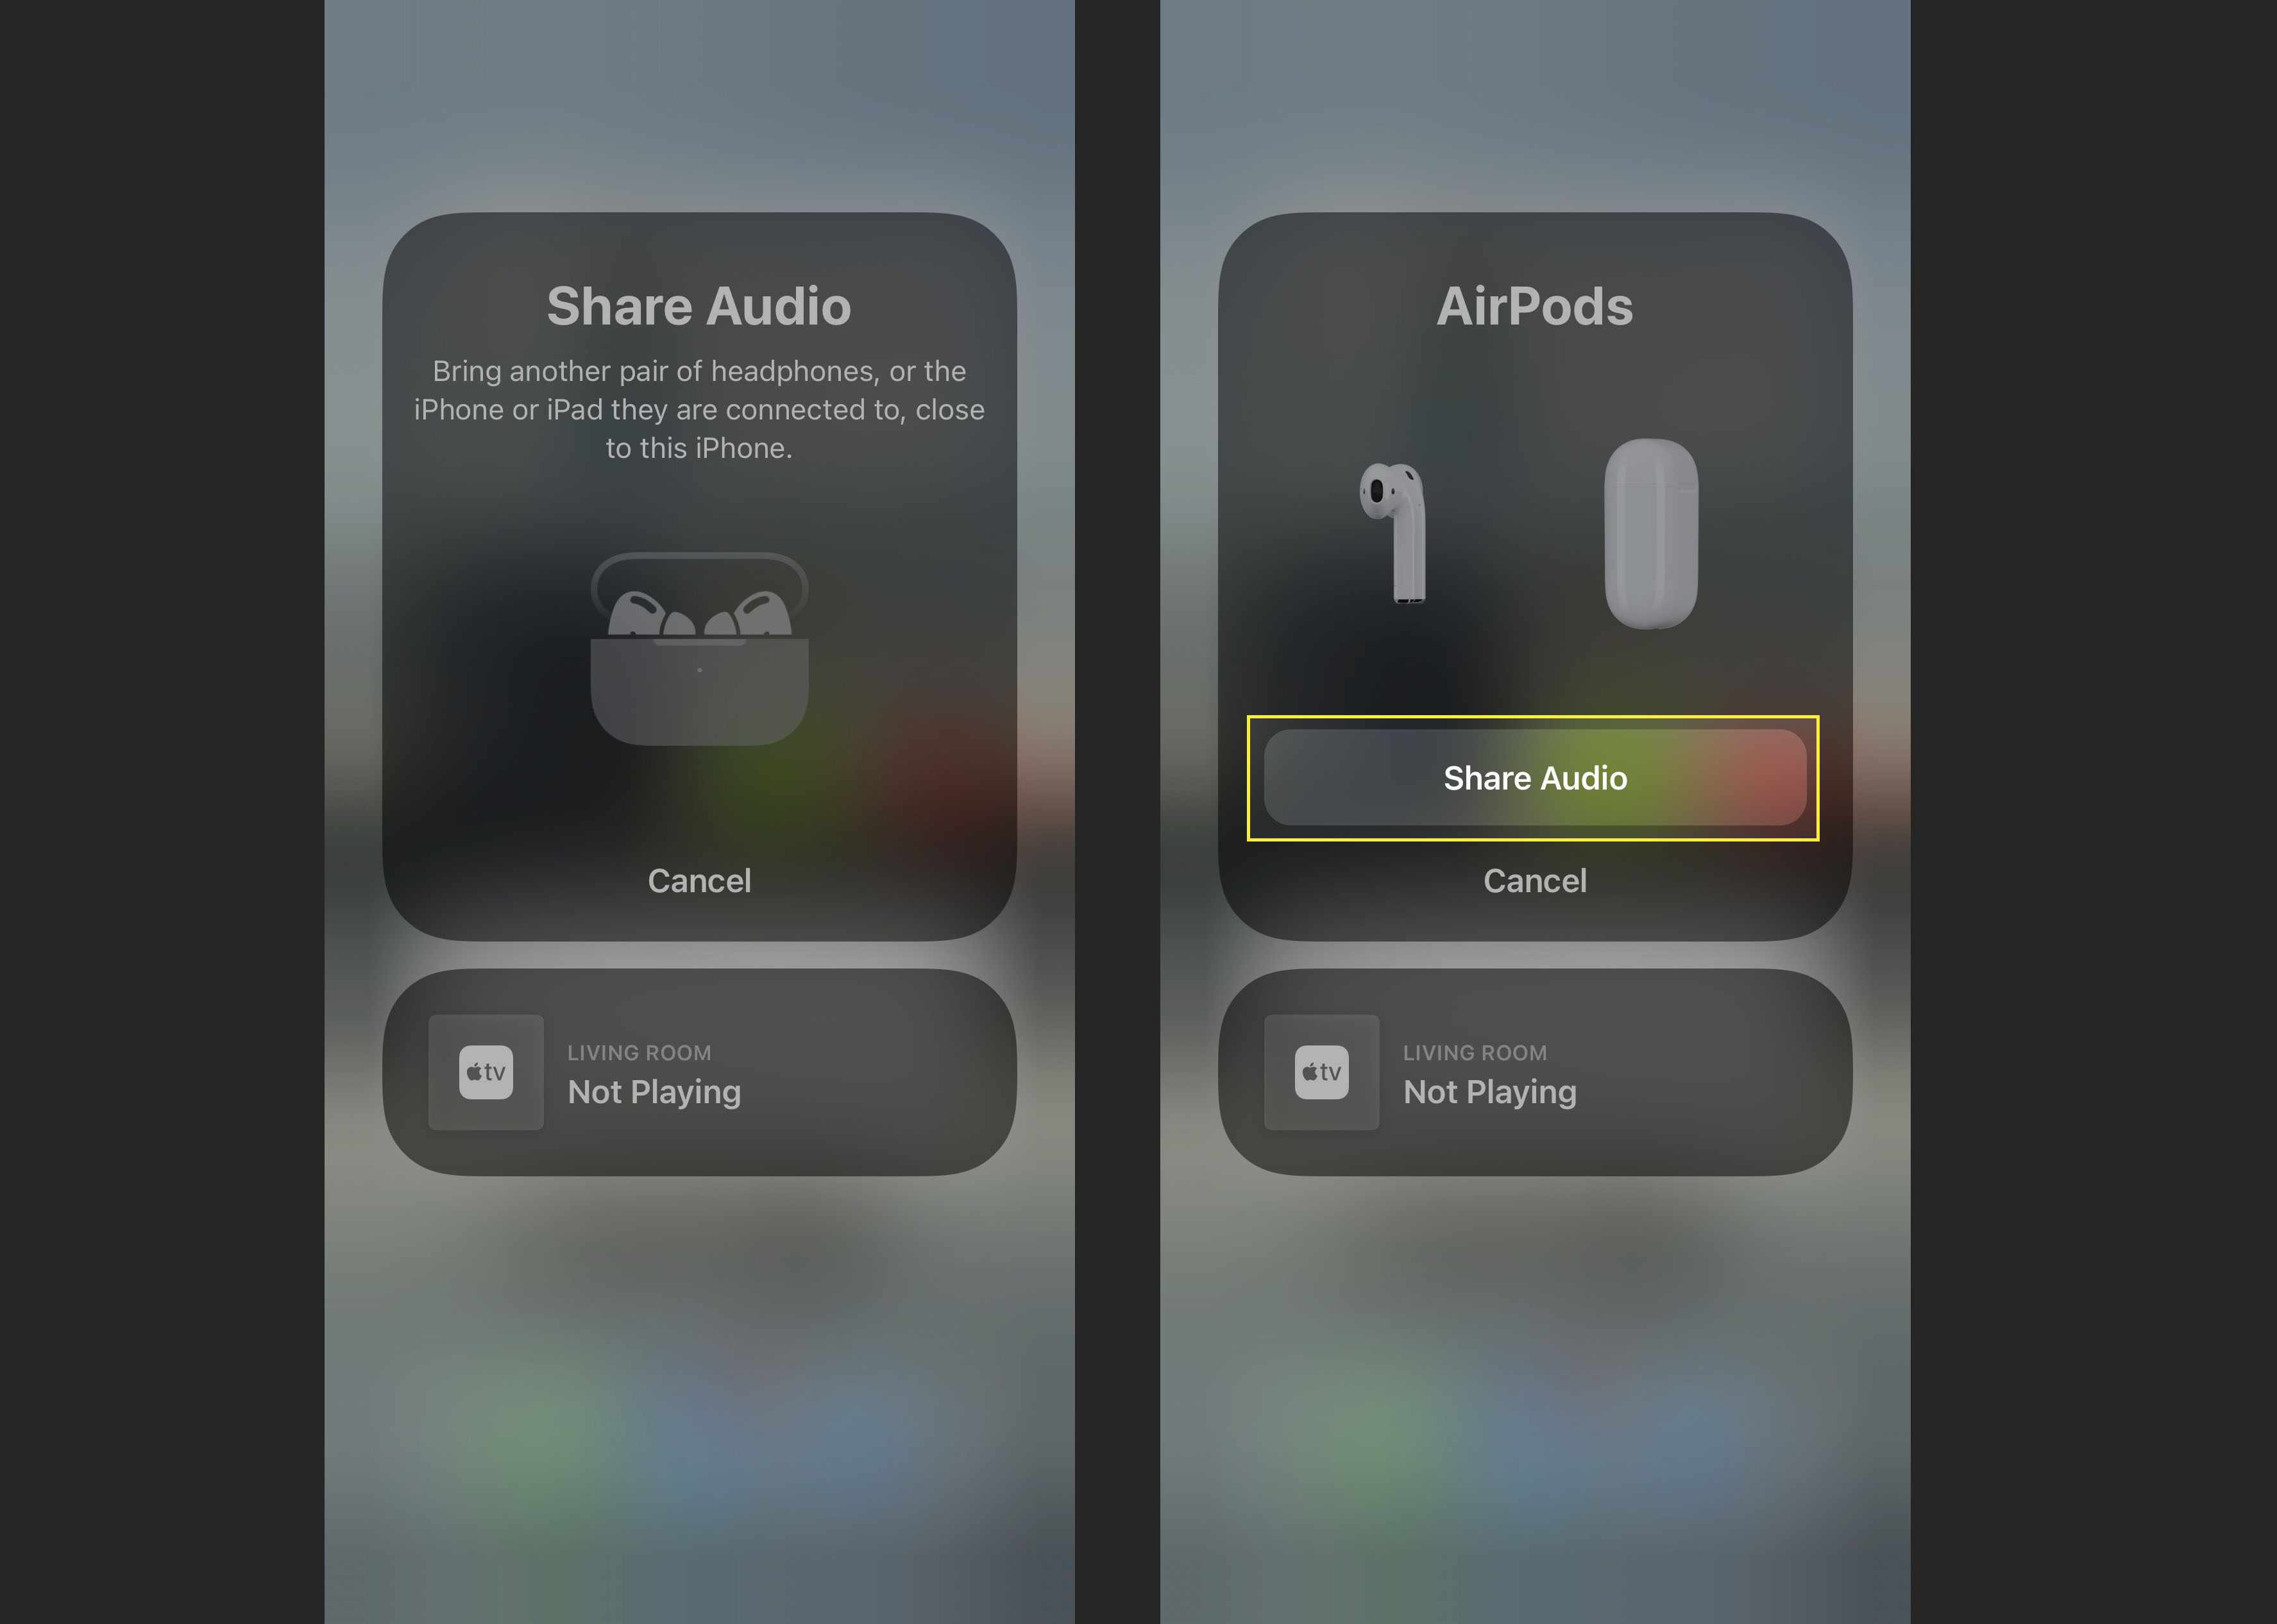 The Share Audio button to connect two sets of AirPods to one iPhone.